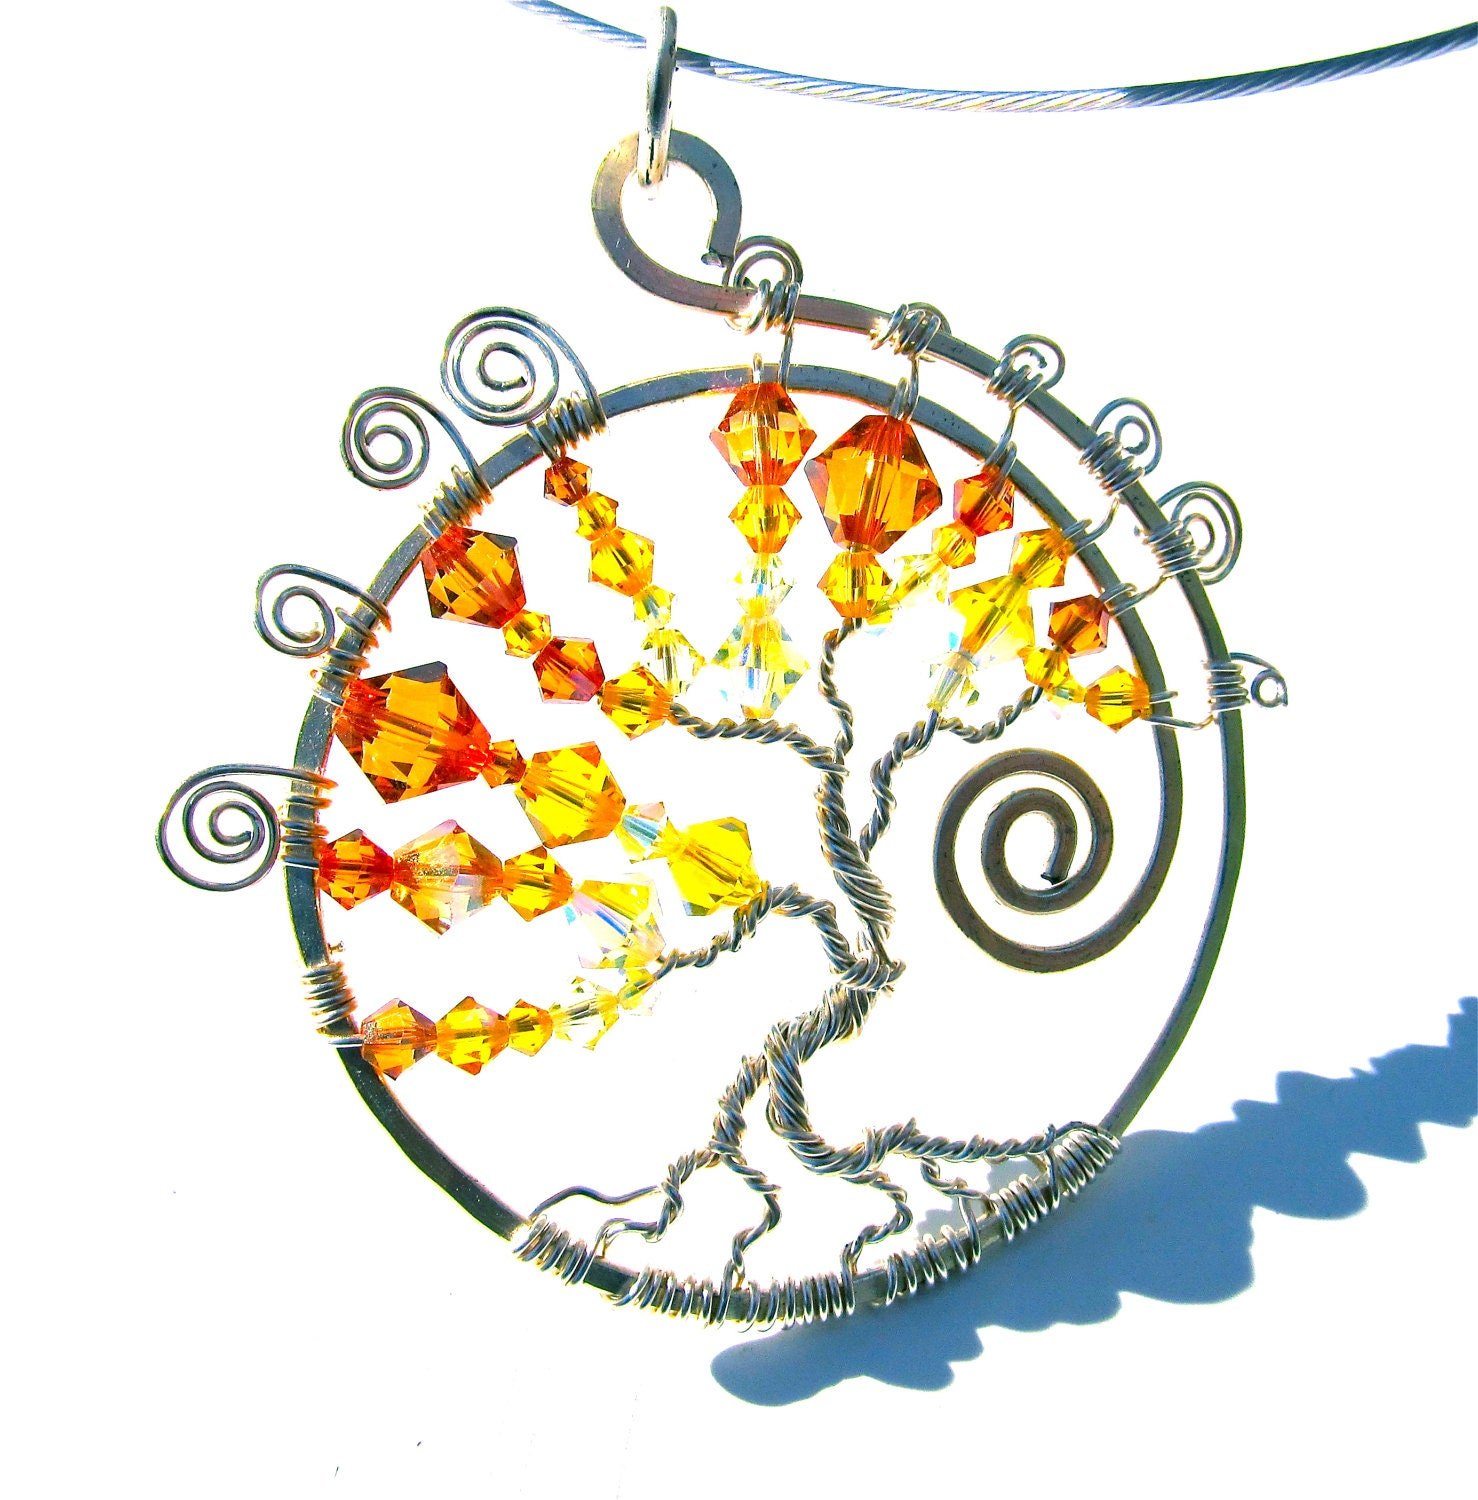 Swarovski Tree of Life, Sunny Yellow and Orange Swarovski Crystals Wrapped with Silver Wire on a Sleek Nylon Choker Cord - CarrieEastwood